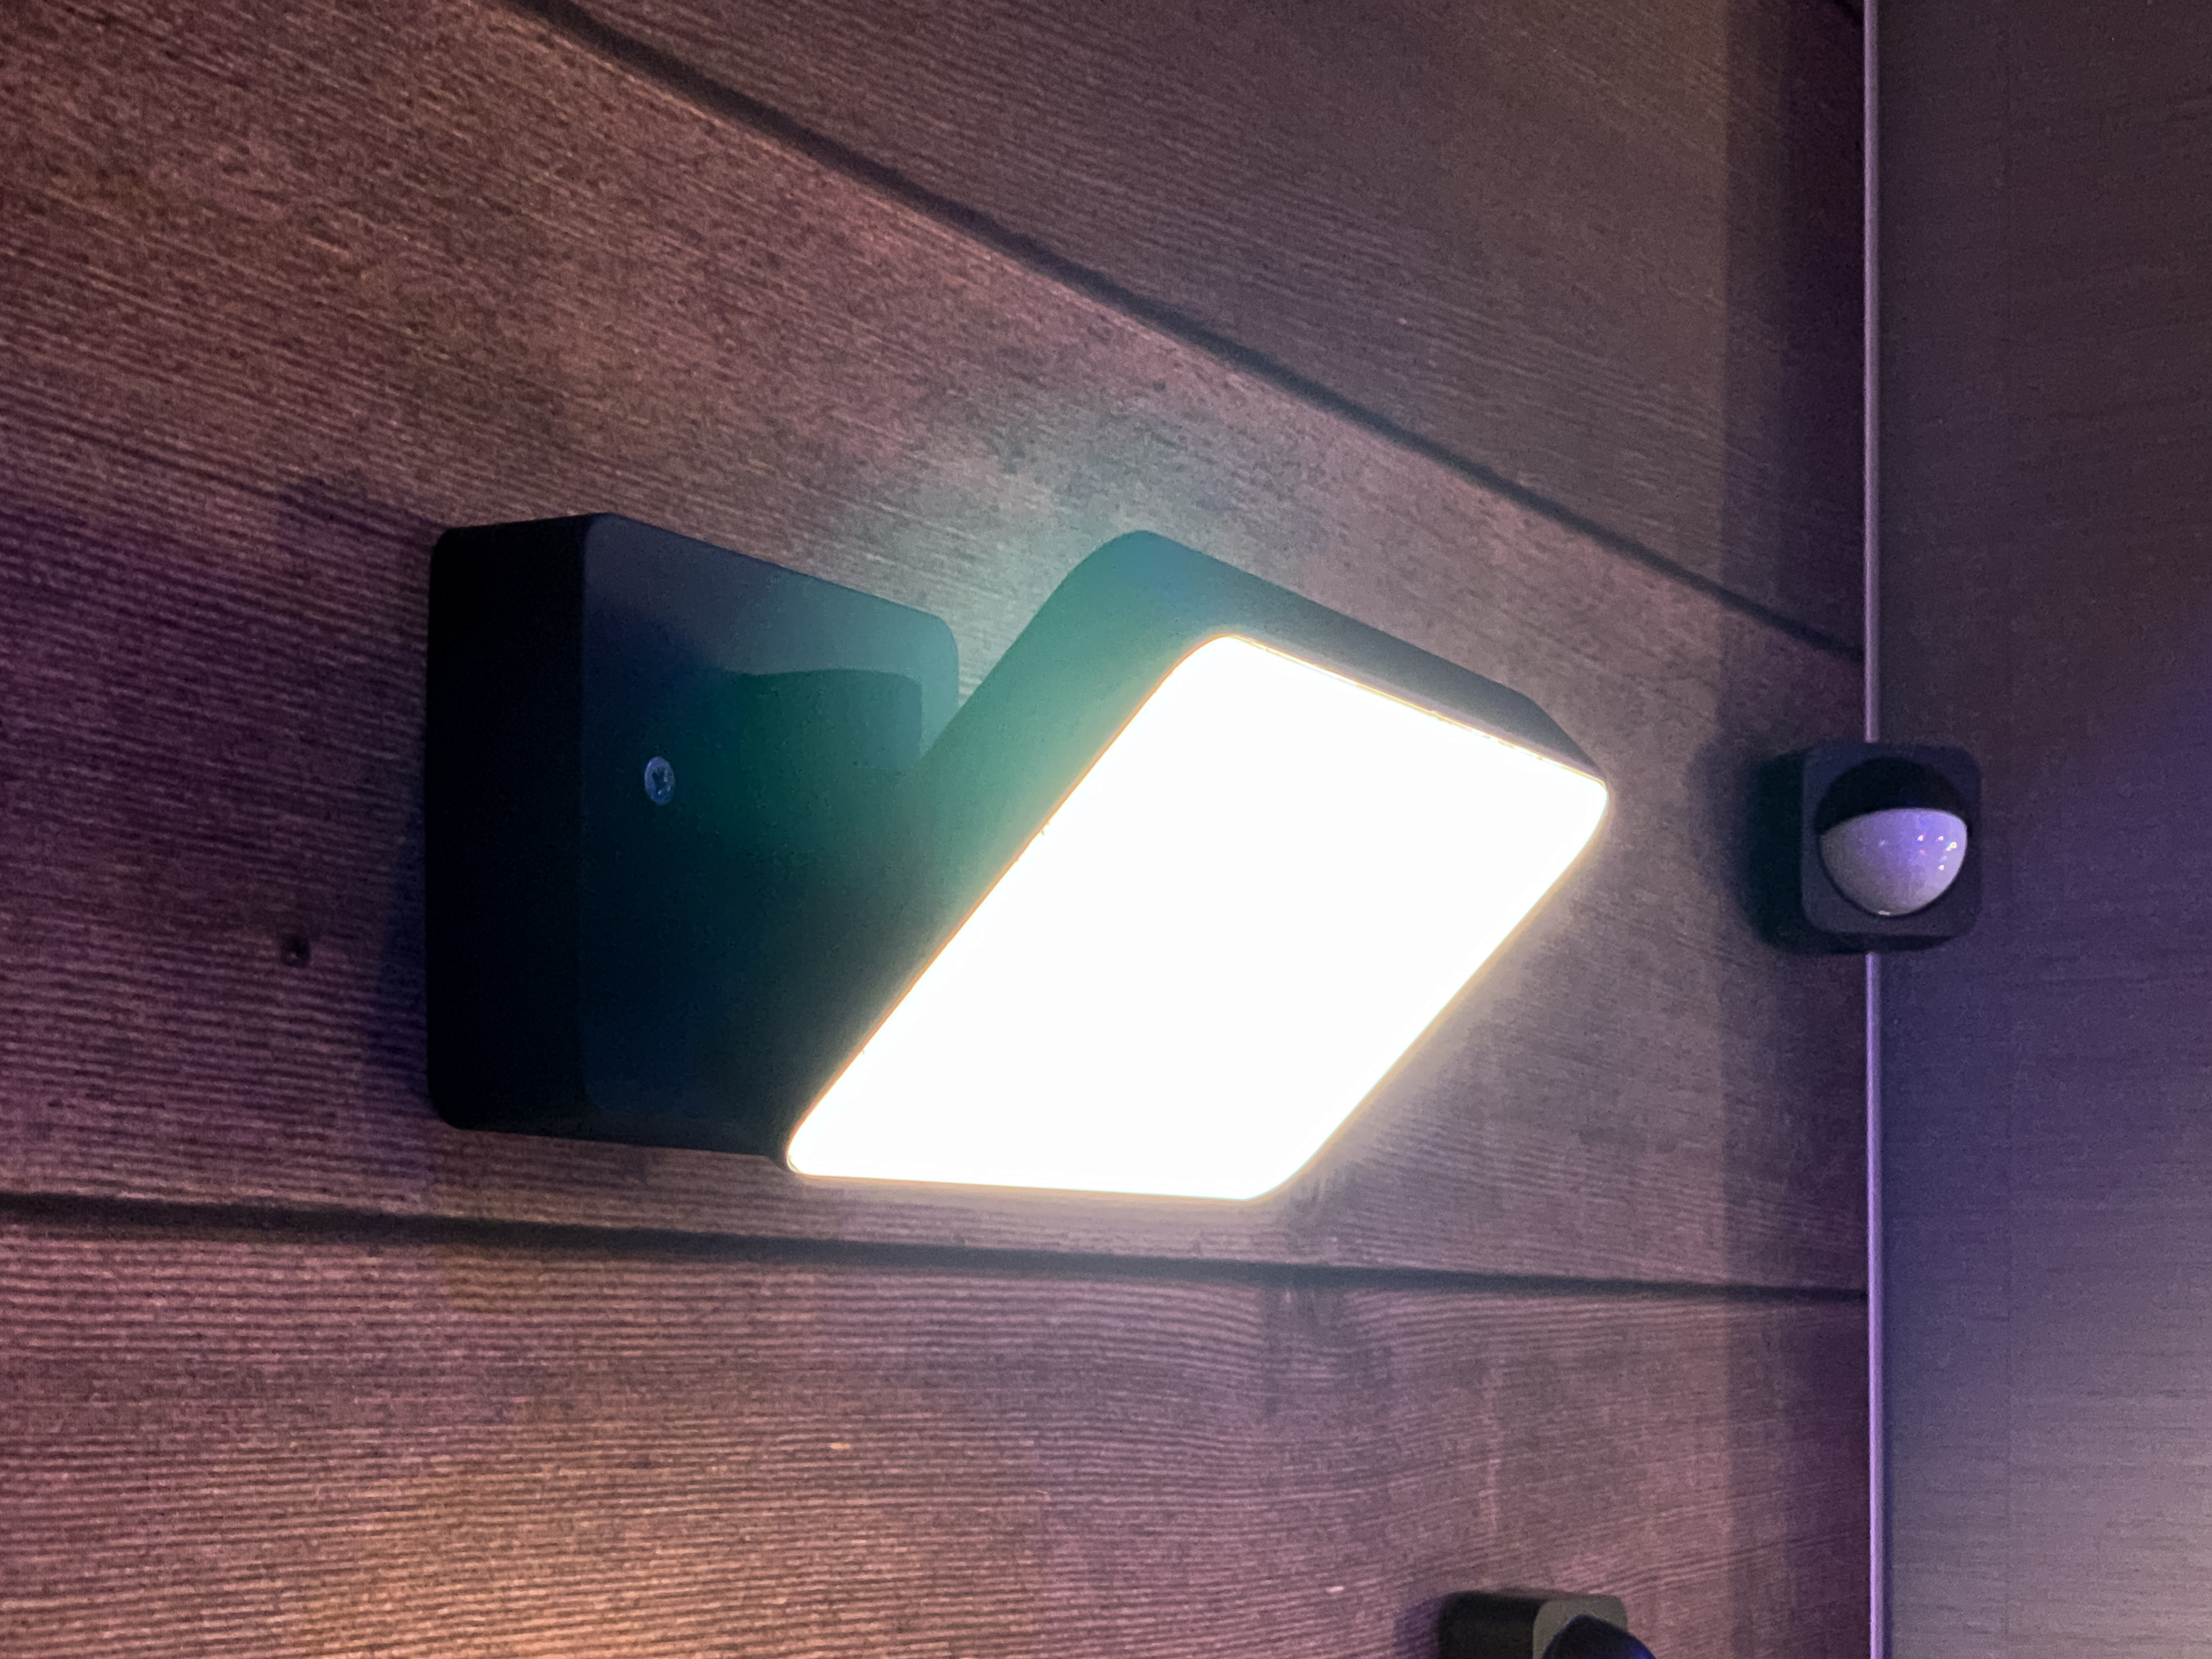 Gallery Hands On With The Philips Hue Outdoor Sensor And